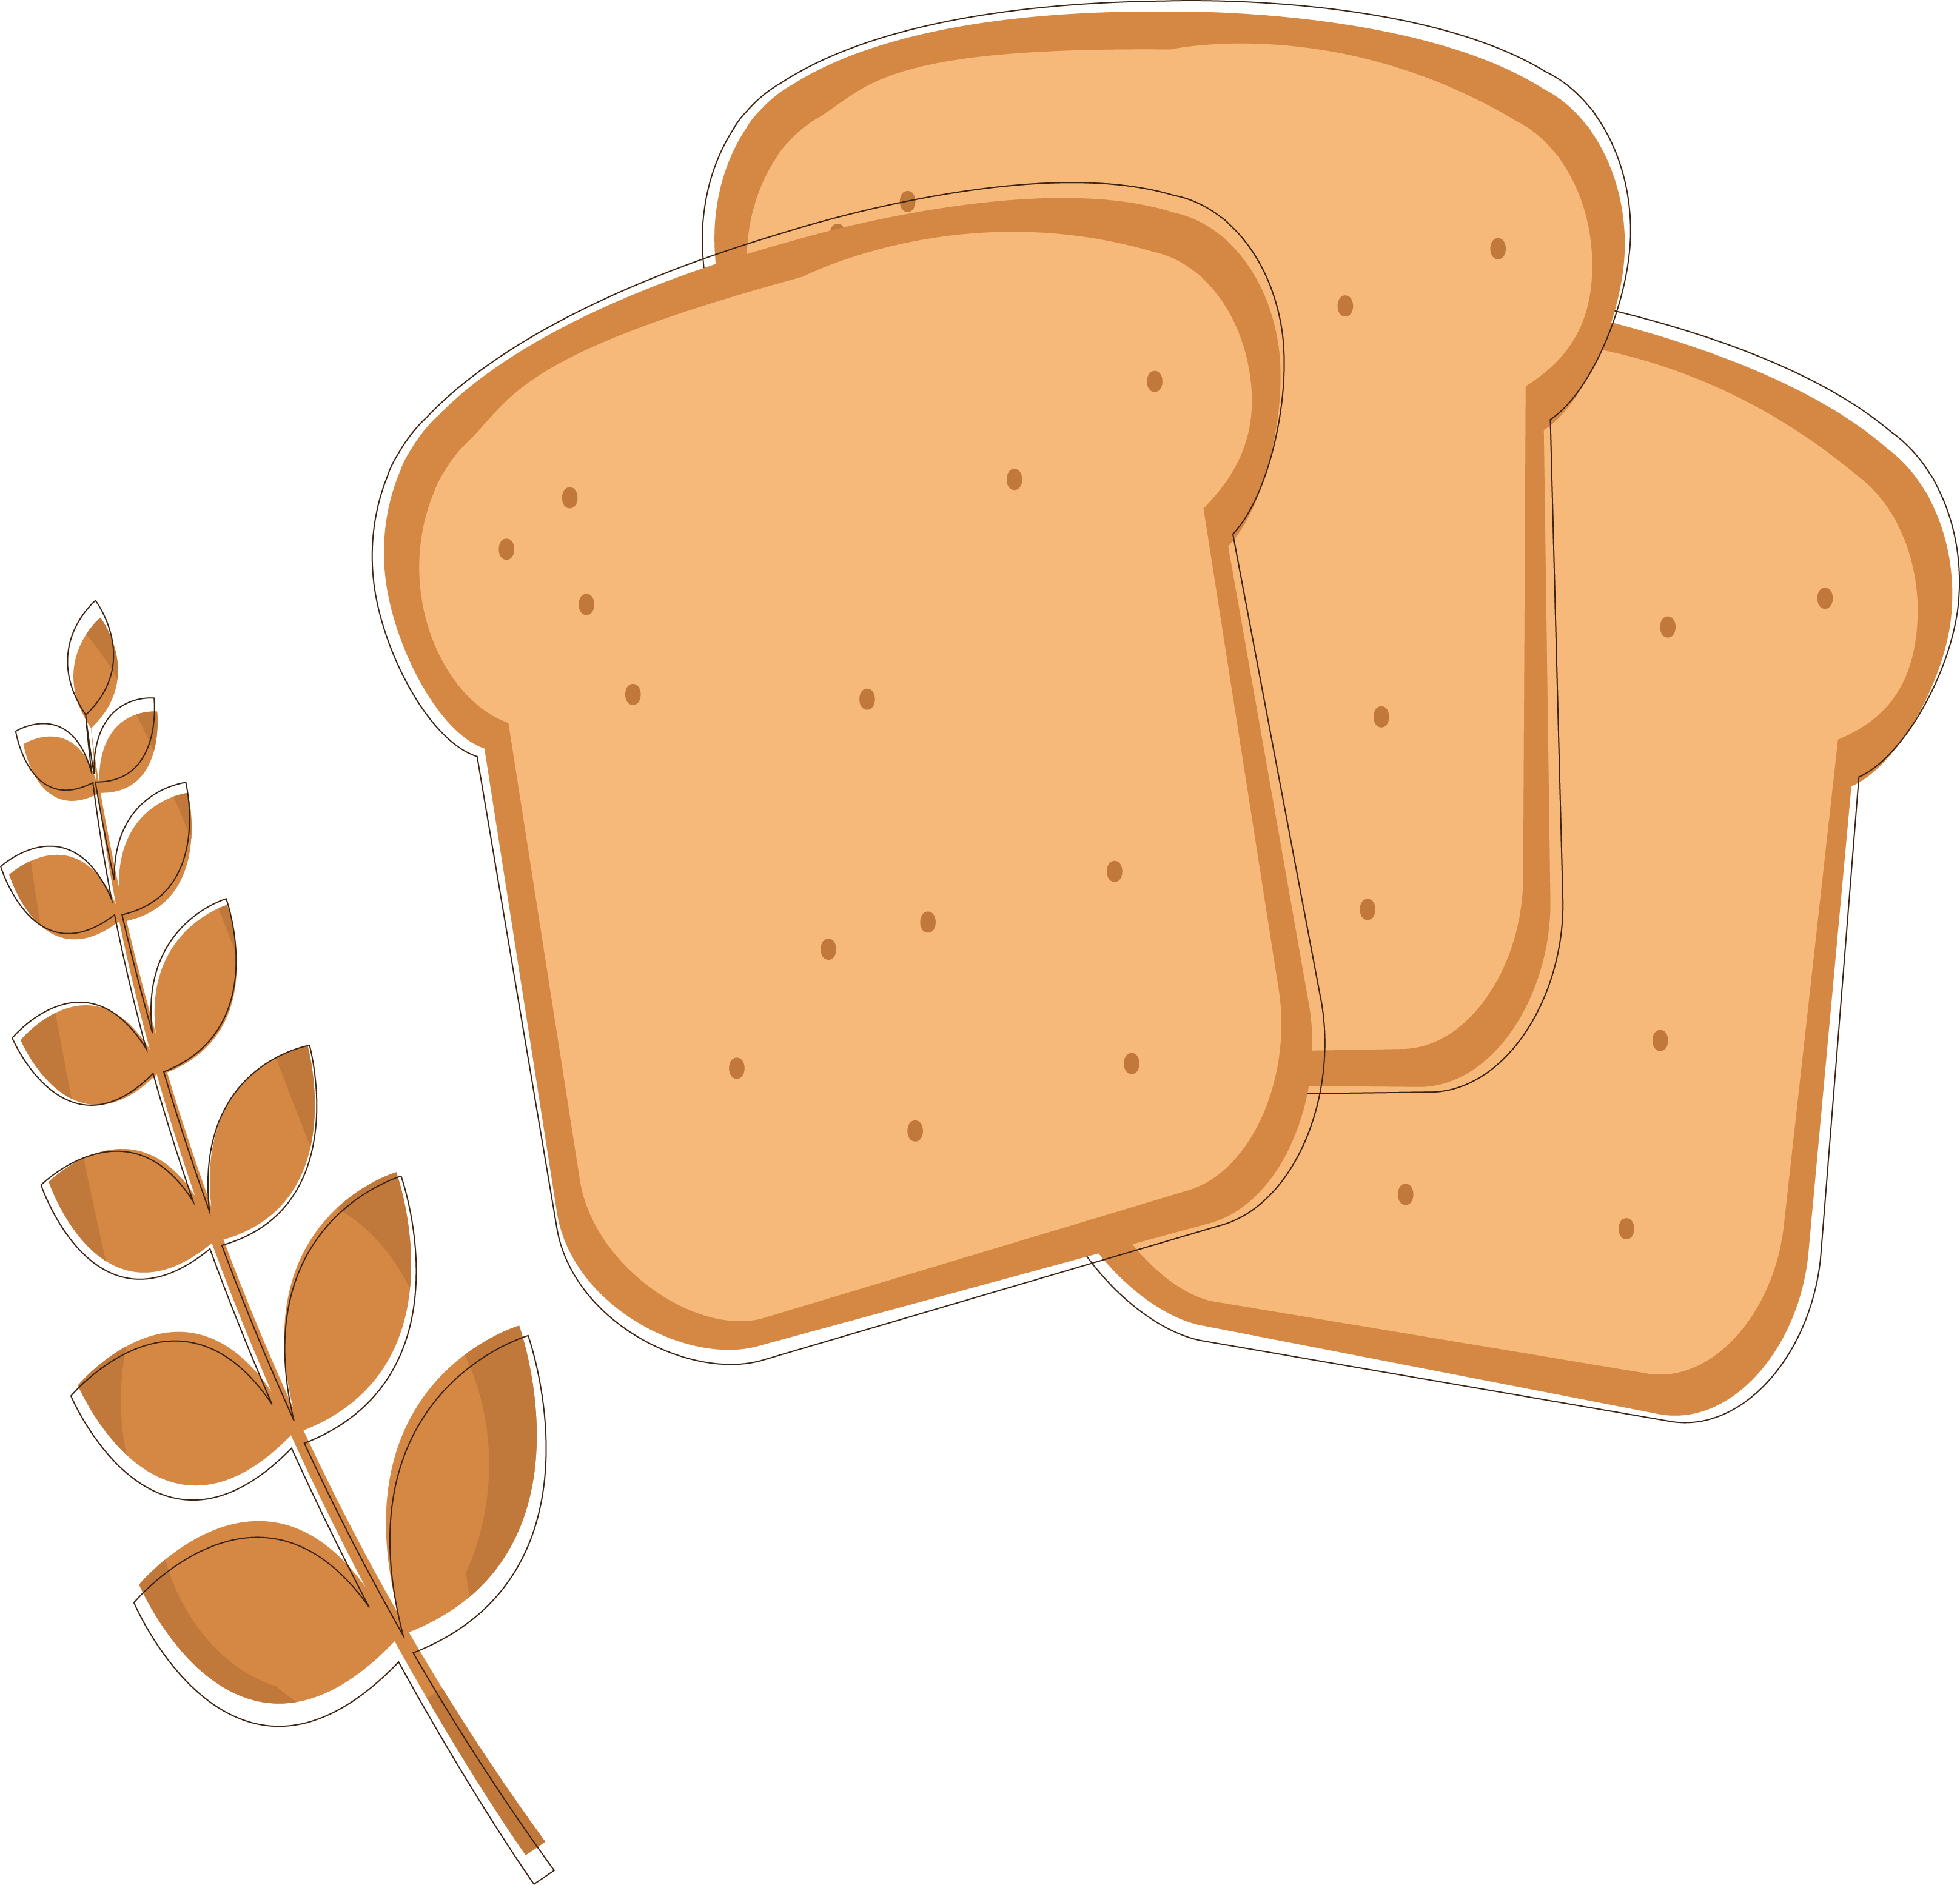 clip freeuse stock toast bread clip art fine design - toast clipart png |  full size png download | seekpng  seekpng